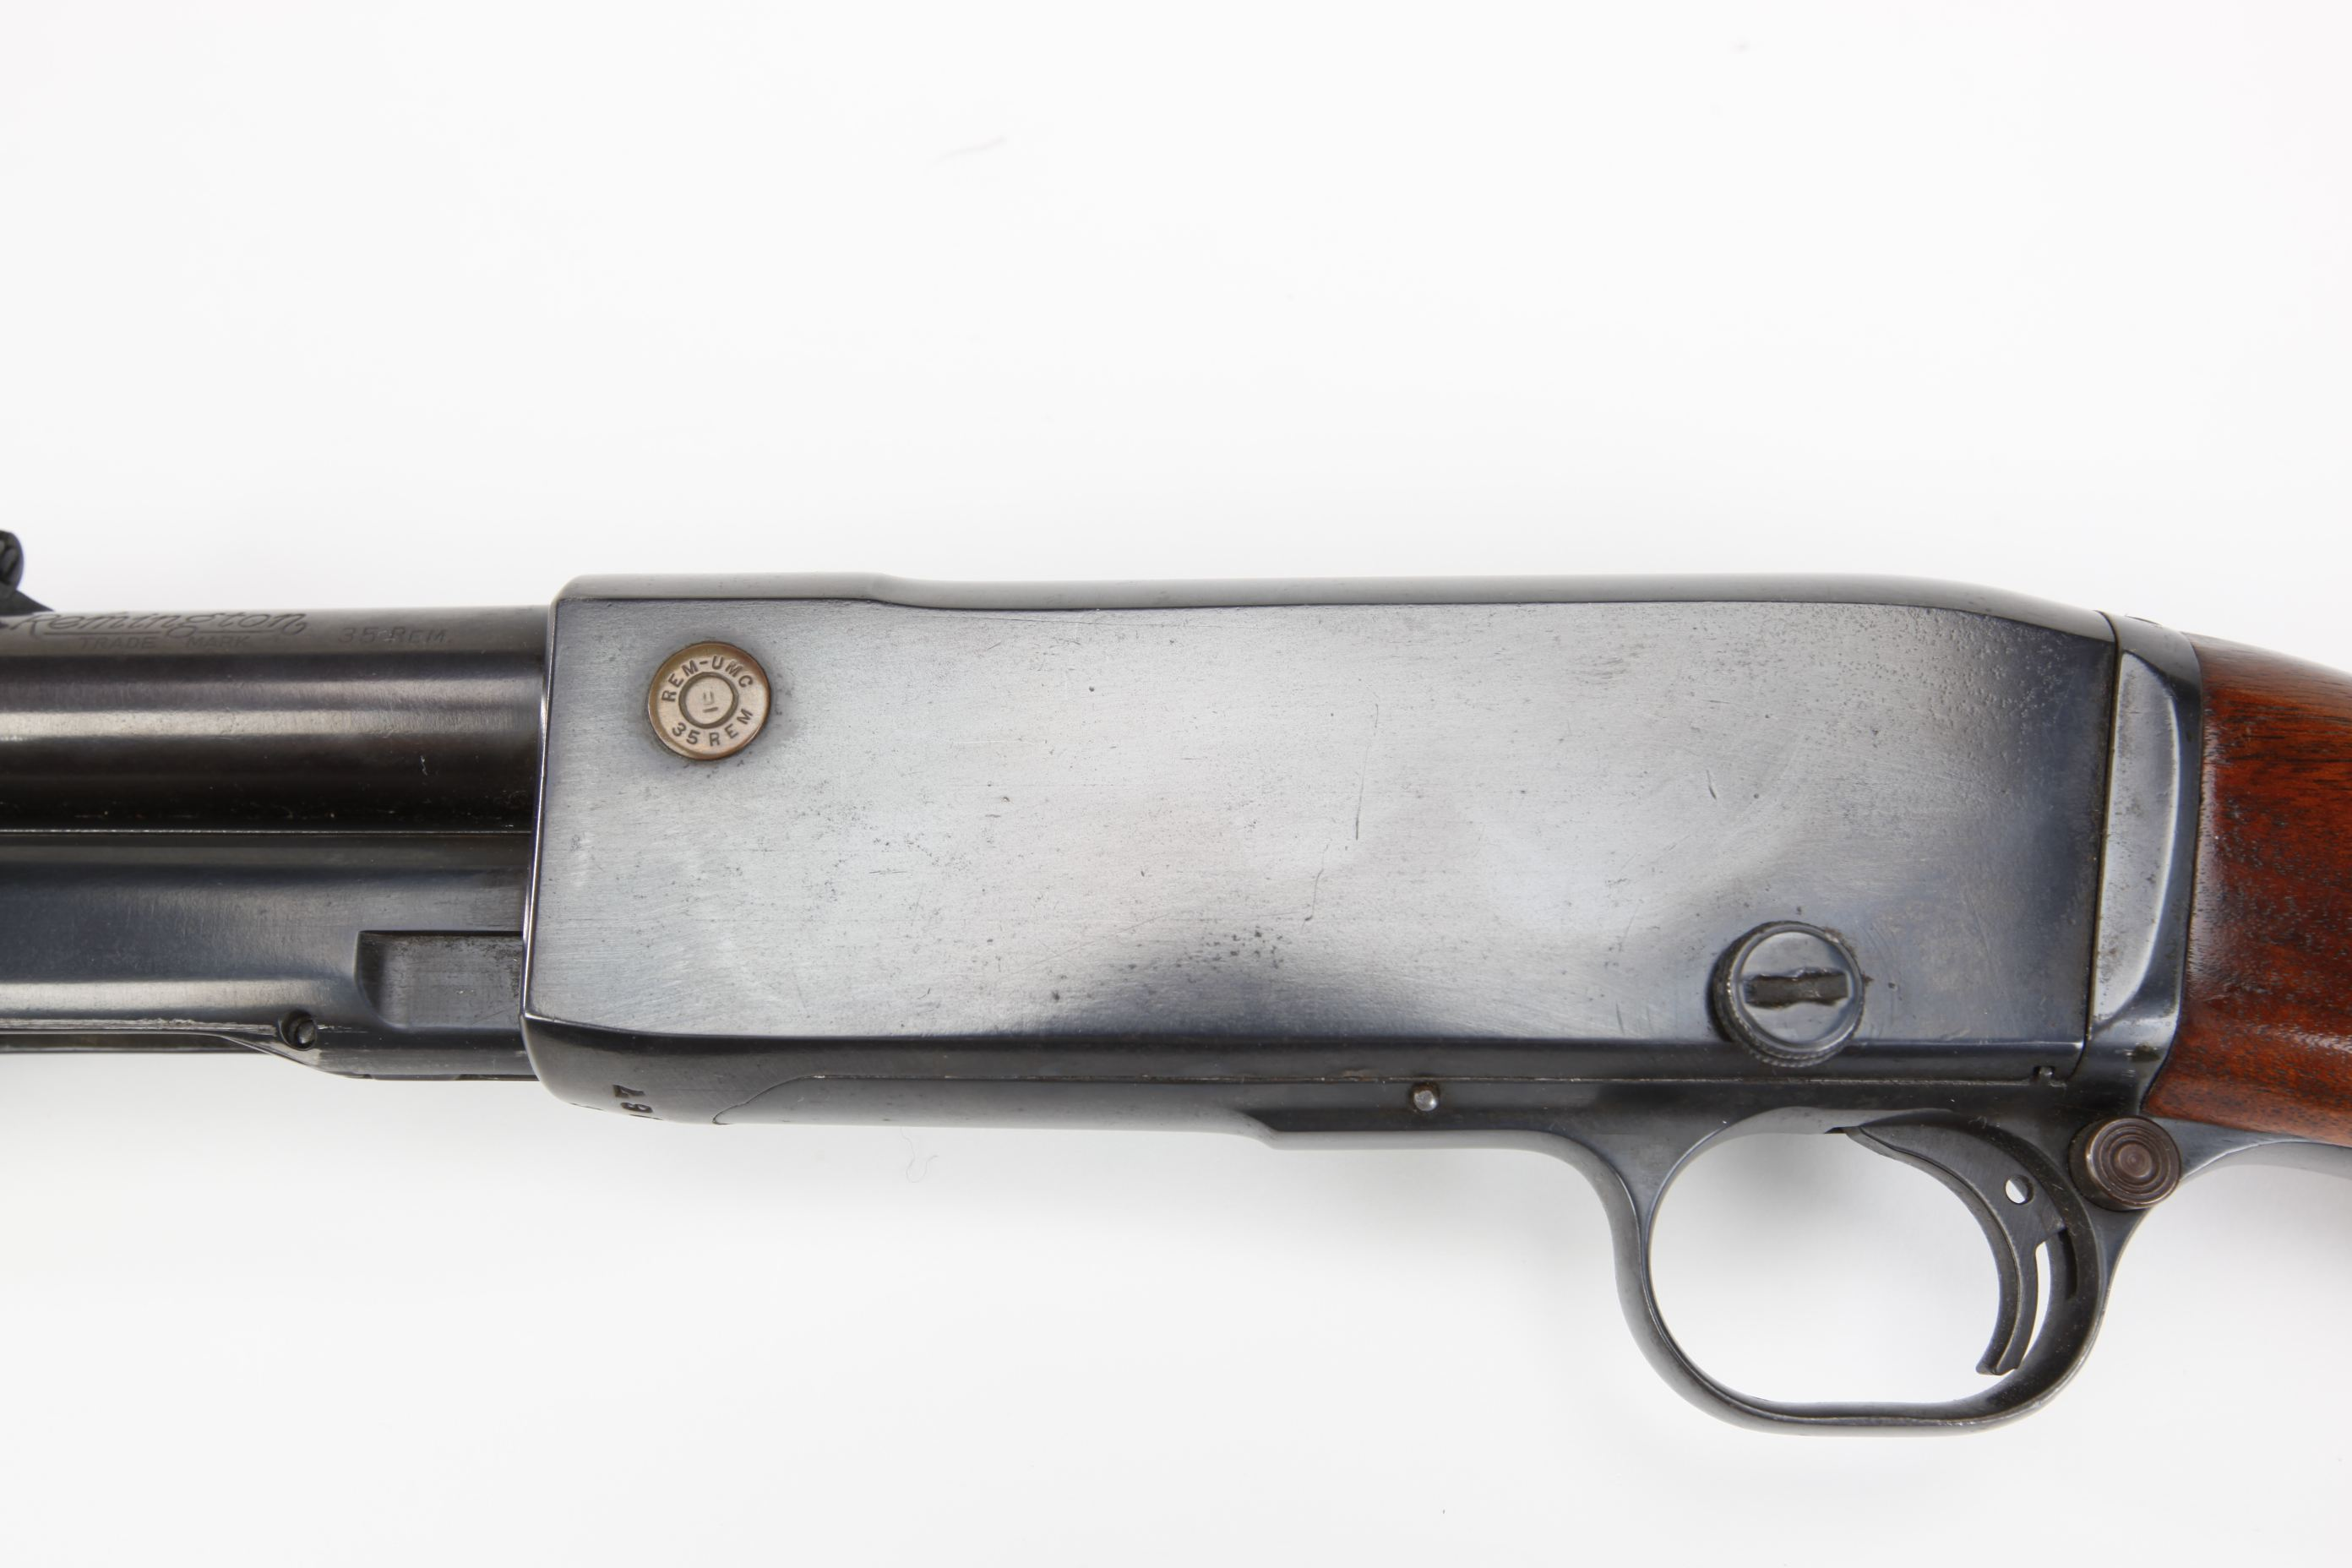 Remington Model 14A Slide Action Rifle